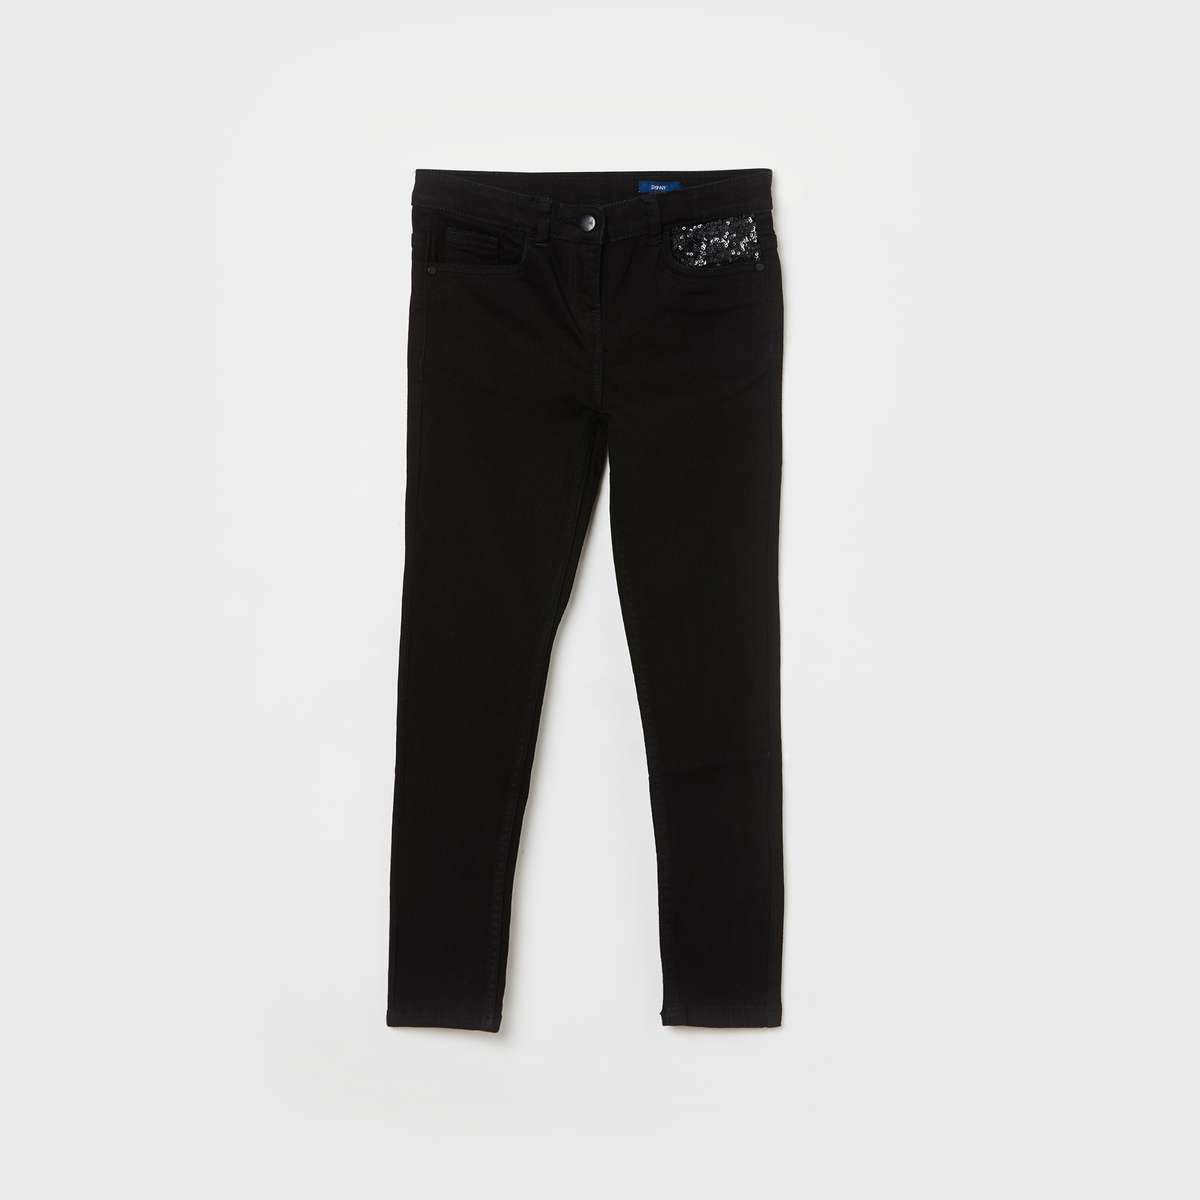 1.FAME FOREVER YOUNG Girls Solid Slim Fit Jeans